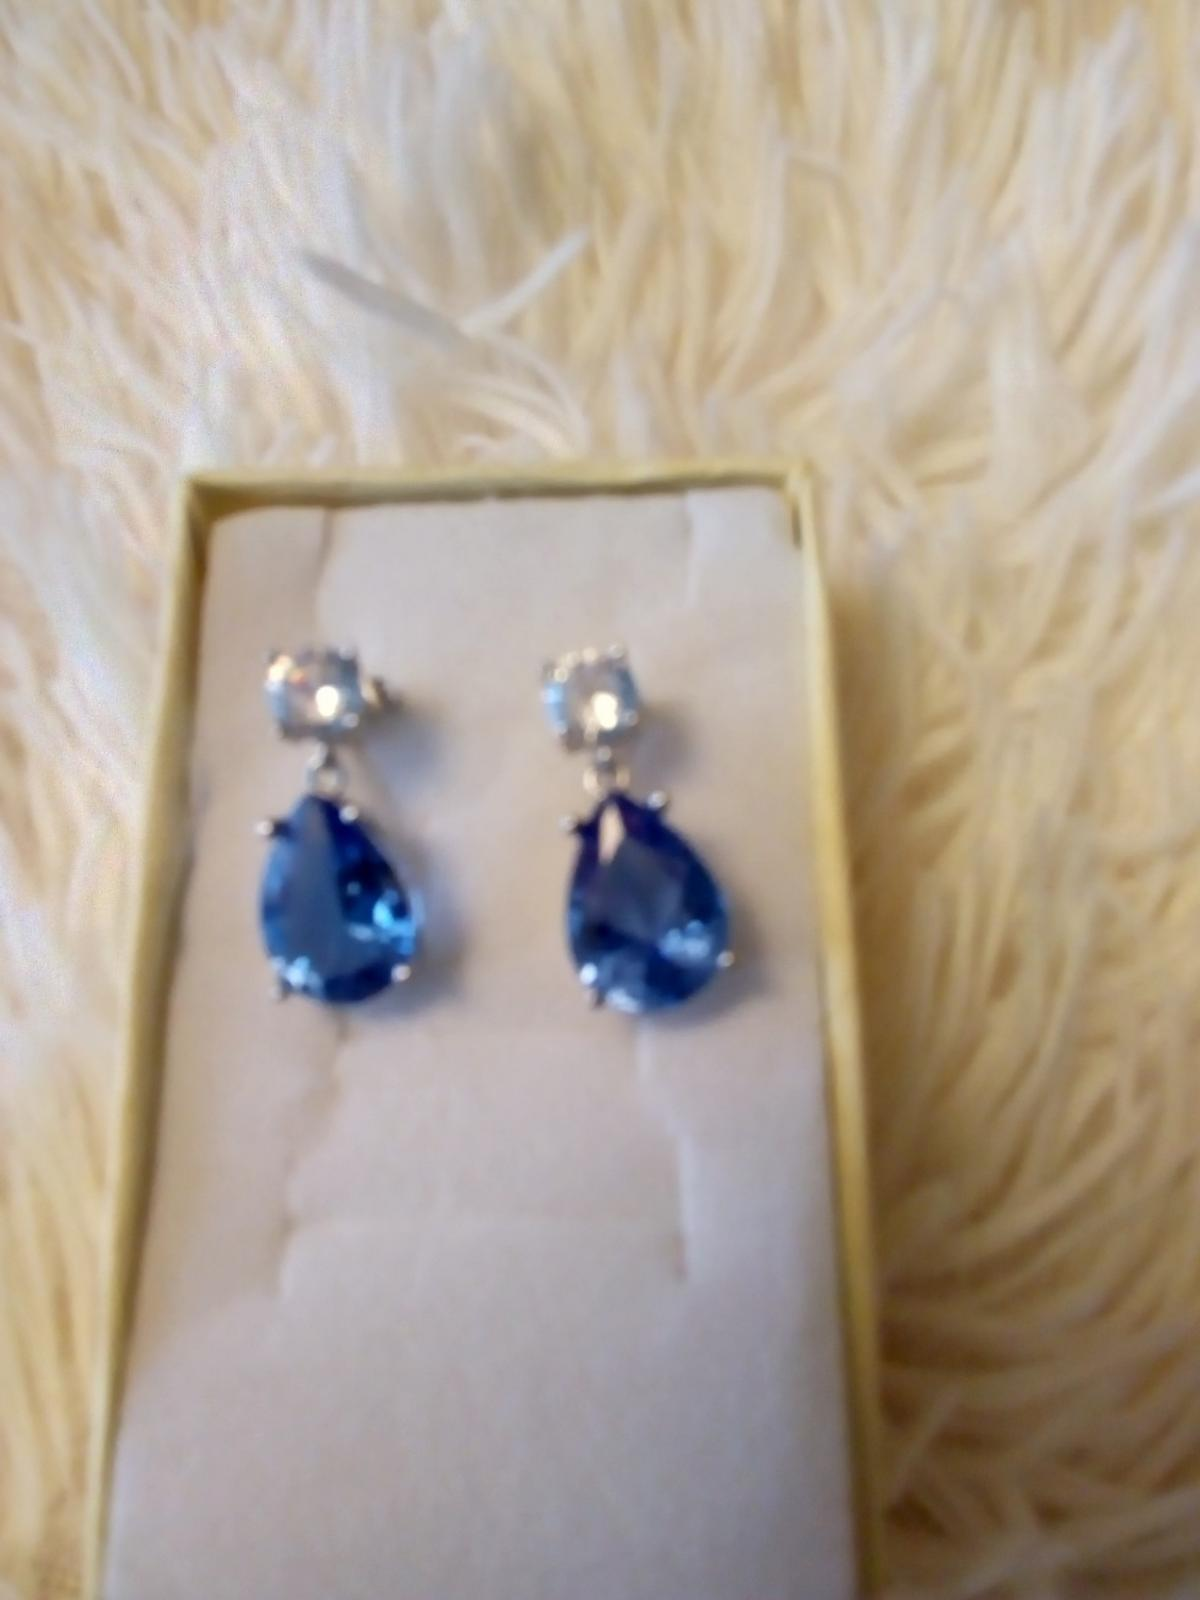 These Cute Blue Sparkling Earrings Are For Pierced Ears Brand New And Comes With A Gift Box